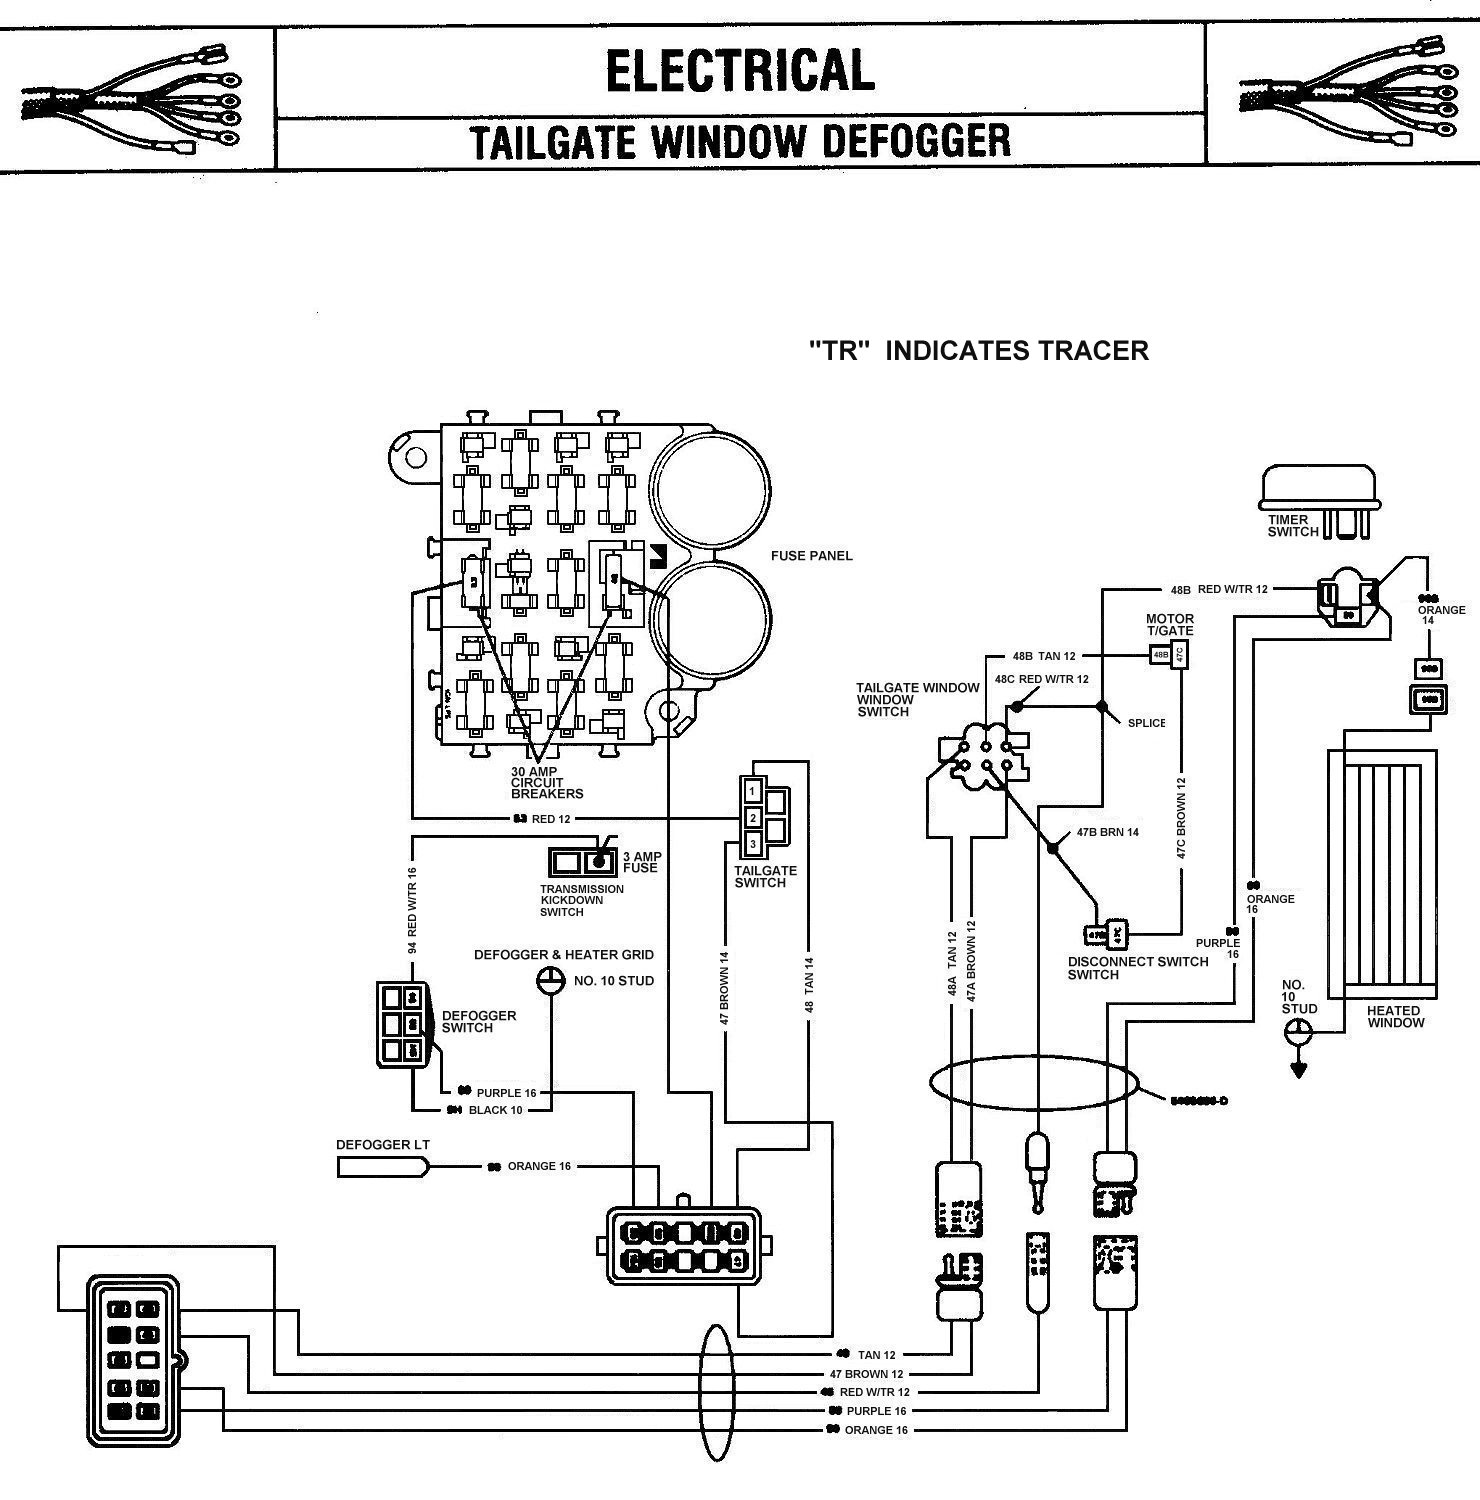 hight resolution of 1984 1986 rear window defroster tom oljeep collins fsj wiring page 1984 1986 rear window defroster jeep air control valve wiring schematic